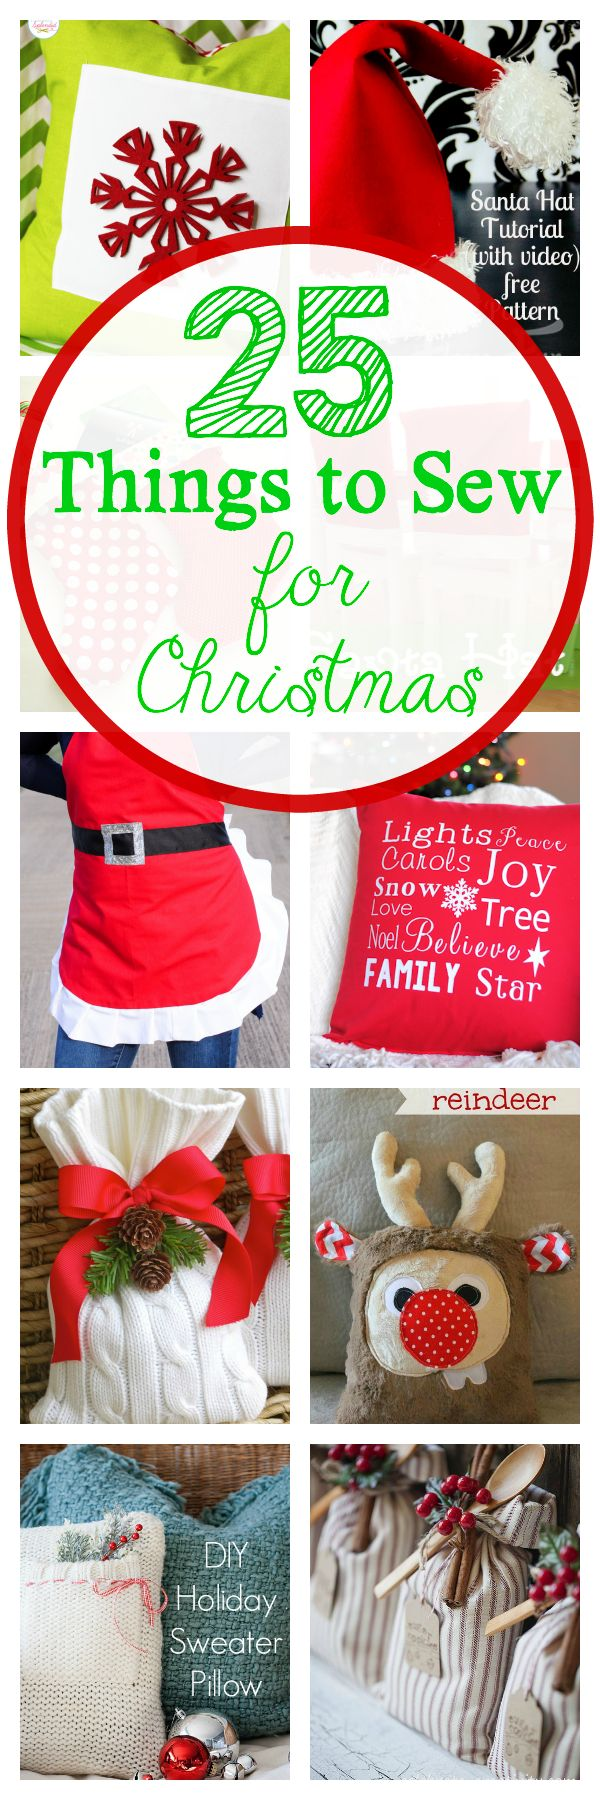 25 Things to Sew for Christmas- time to get started on some seasonal projects!